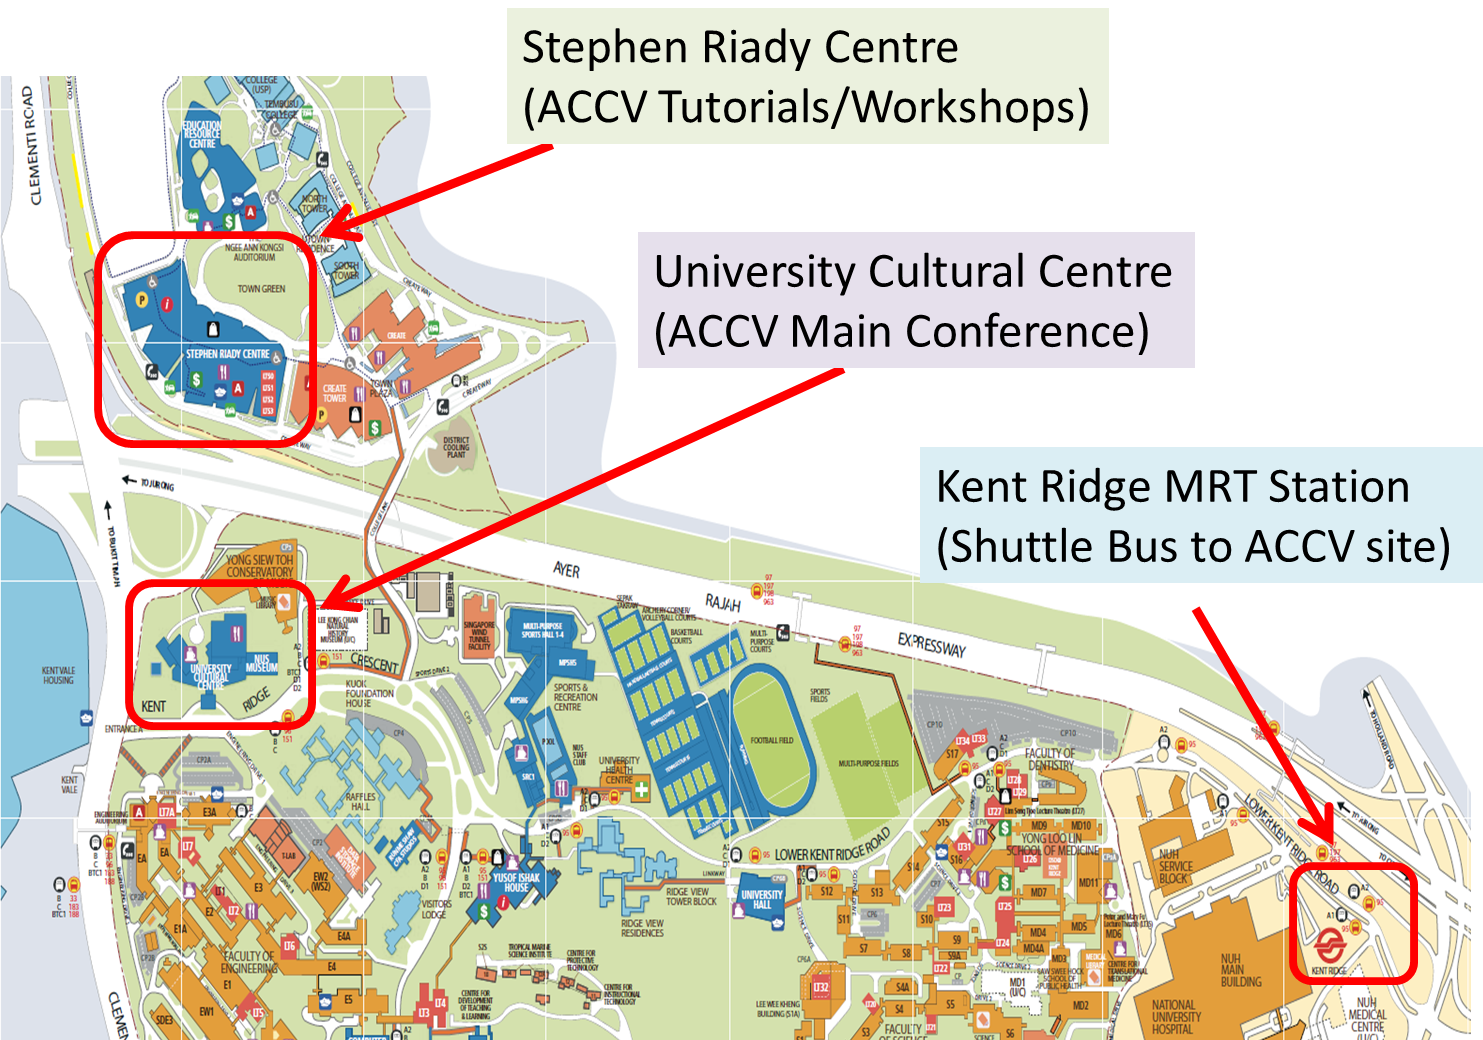 ACCV'2014 - Maps on uccs mascot, west wing map, colorado springs map, uccs colorado springs co, uccs clock tower, uccs student life, union county college cranford nj map, uccs dorms, uccs alpine village, uccs visitor parking, uccs dwire hall lssc, uccs university of colorado spring, national art gallery map, rochester new york airport map, university college cork ireland map, uccs mountain lions, uccs recreation center, uccs communication center, uccs soccer, uccs writing center,